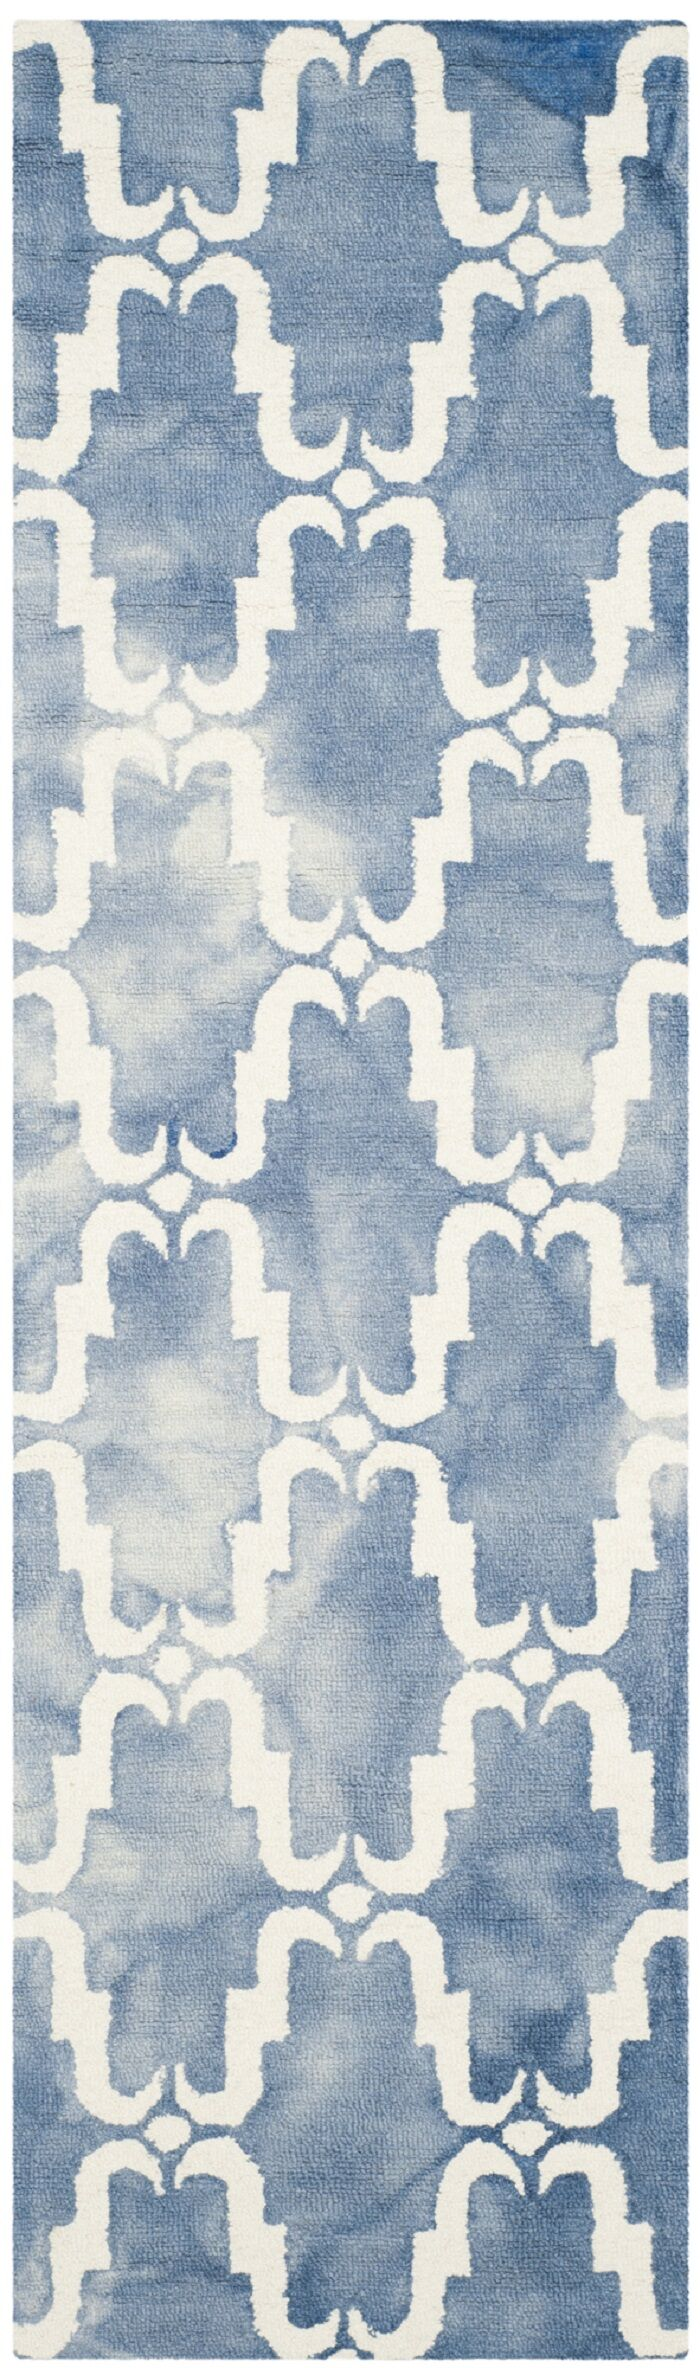 Medfield Hand-Tufted Blue/Ivory Area Rug Rug Size: Runner 2'3